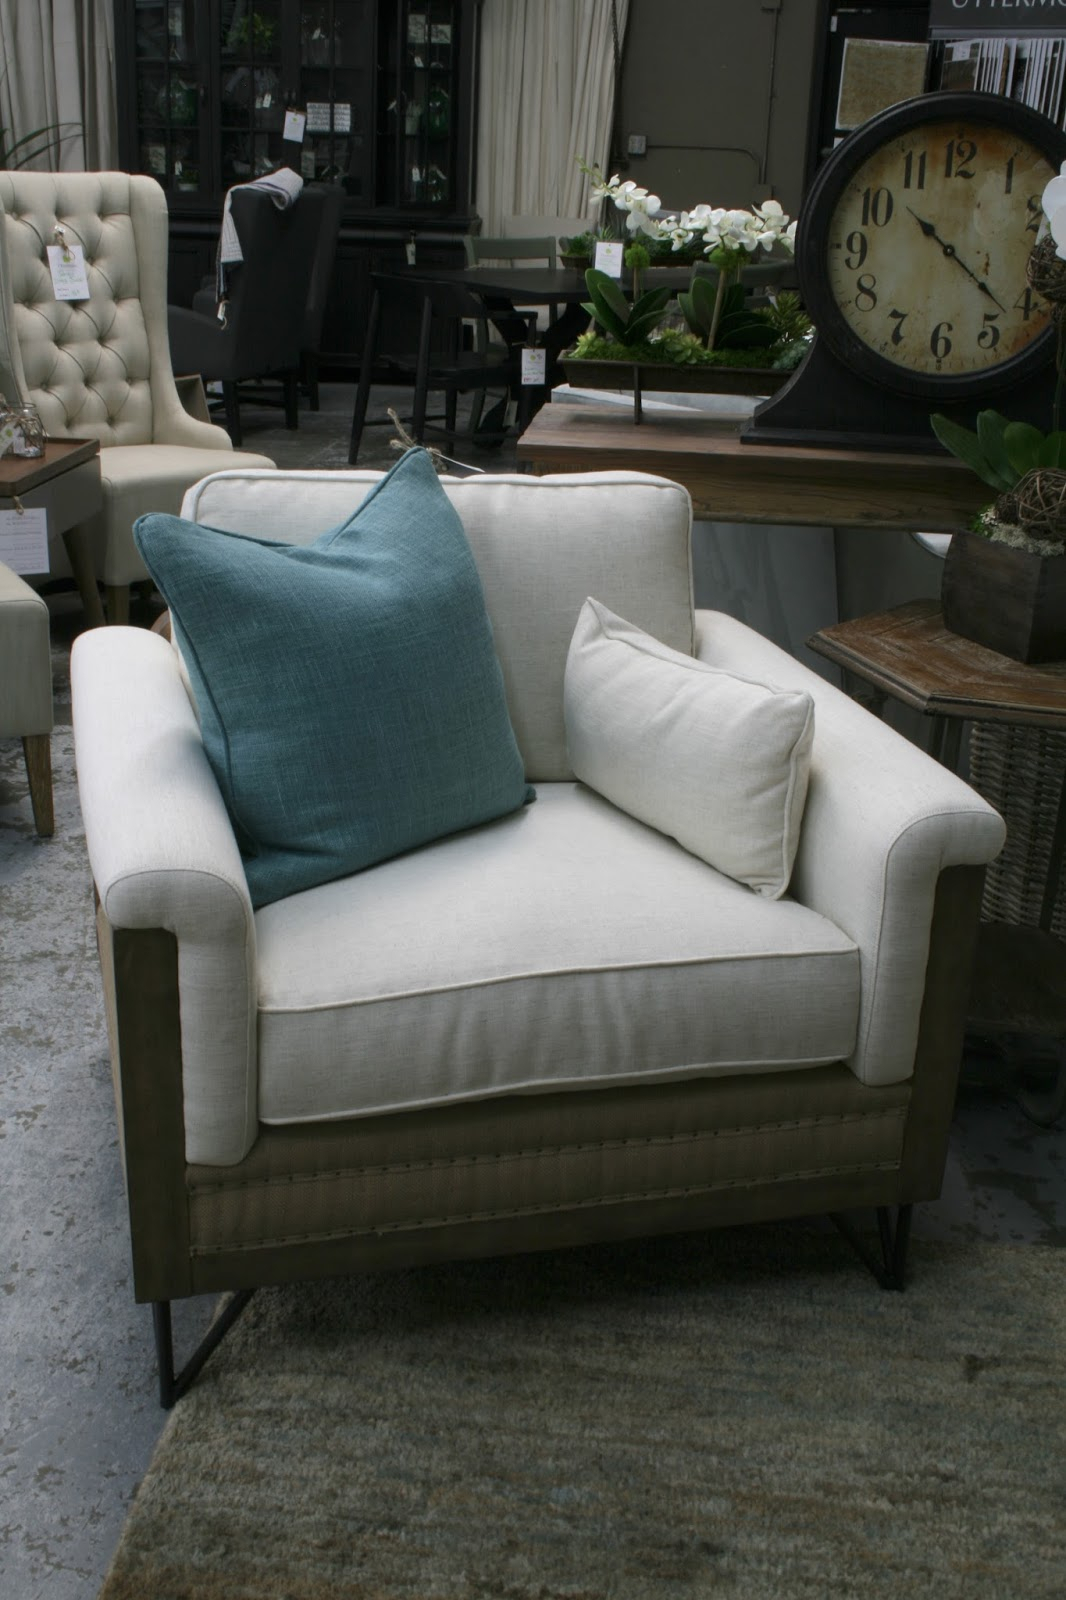 Chartreuse Home Furnishings: June 2017 Throughout Magnolia Home Paradigm Sofa Chairs By Joanna Gaines (View 25 of 25)